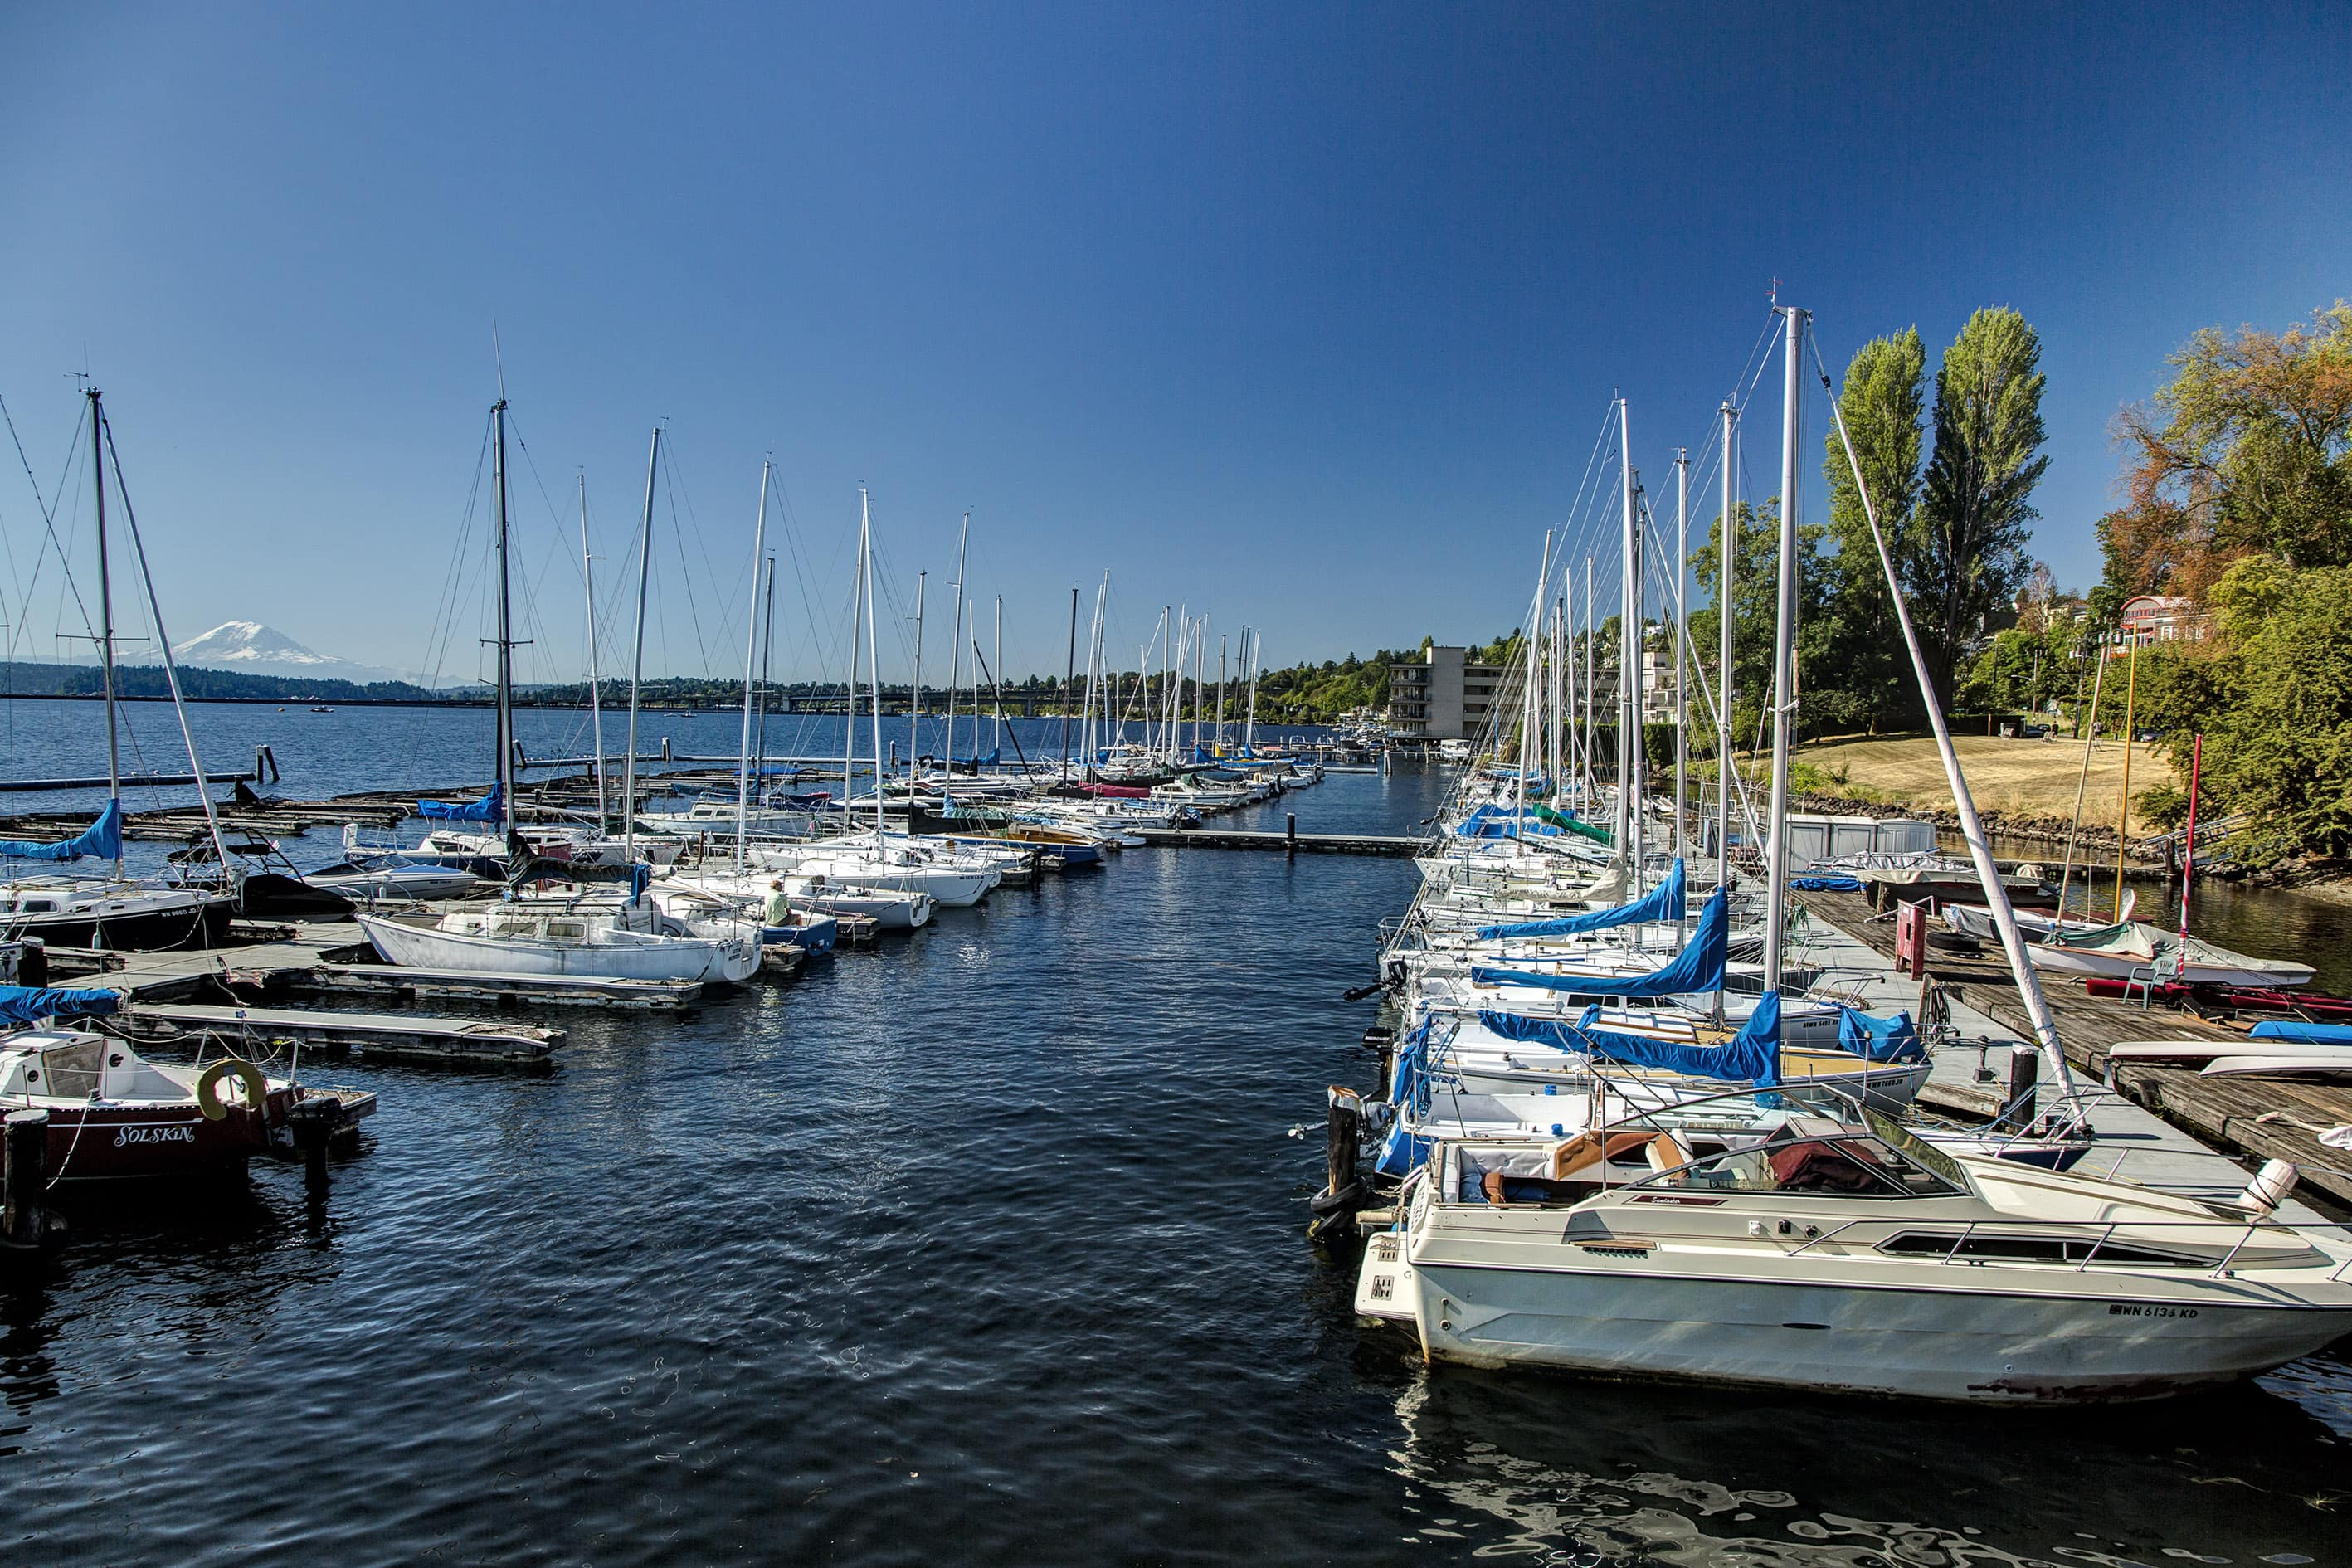 Seattle Is Surrounded By Water And In Summer The Lakes Puget Sound Are Bustling With Boaters Out Soaking Sun Spray